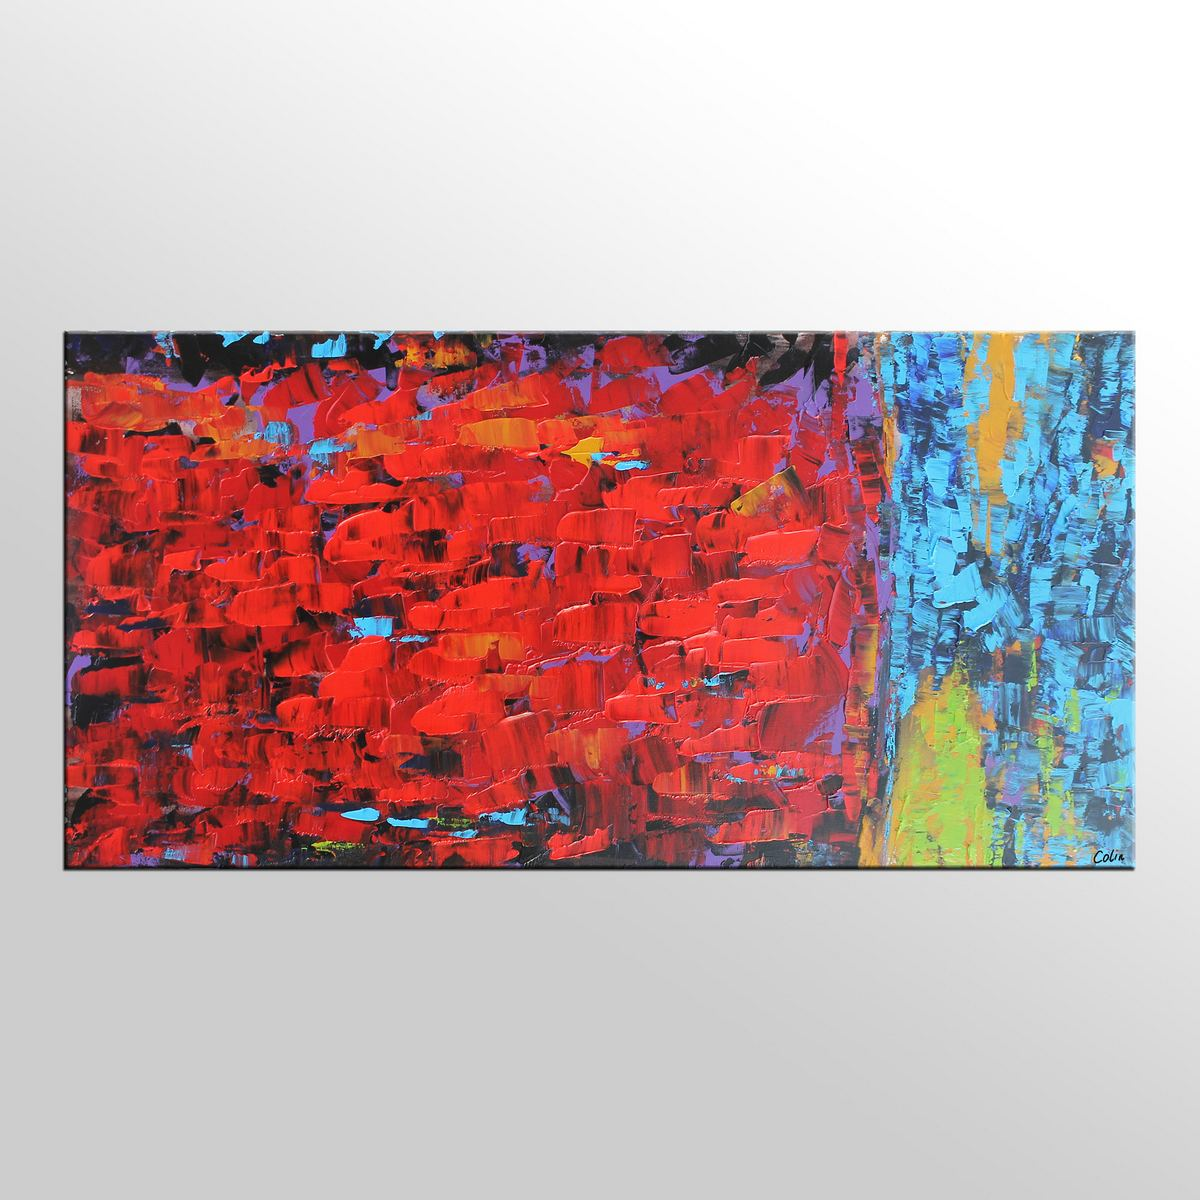 Canvas Art, Modern Wall Art, Contemporary Art, Abstract Wall Art, Oil Painting